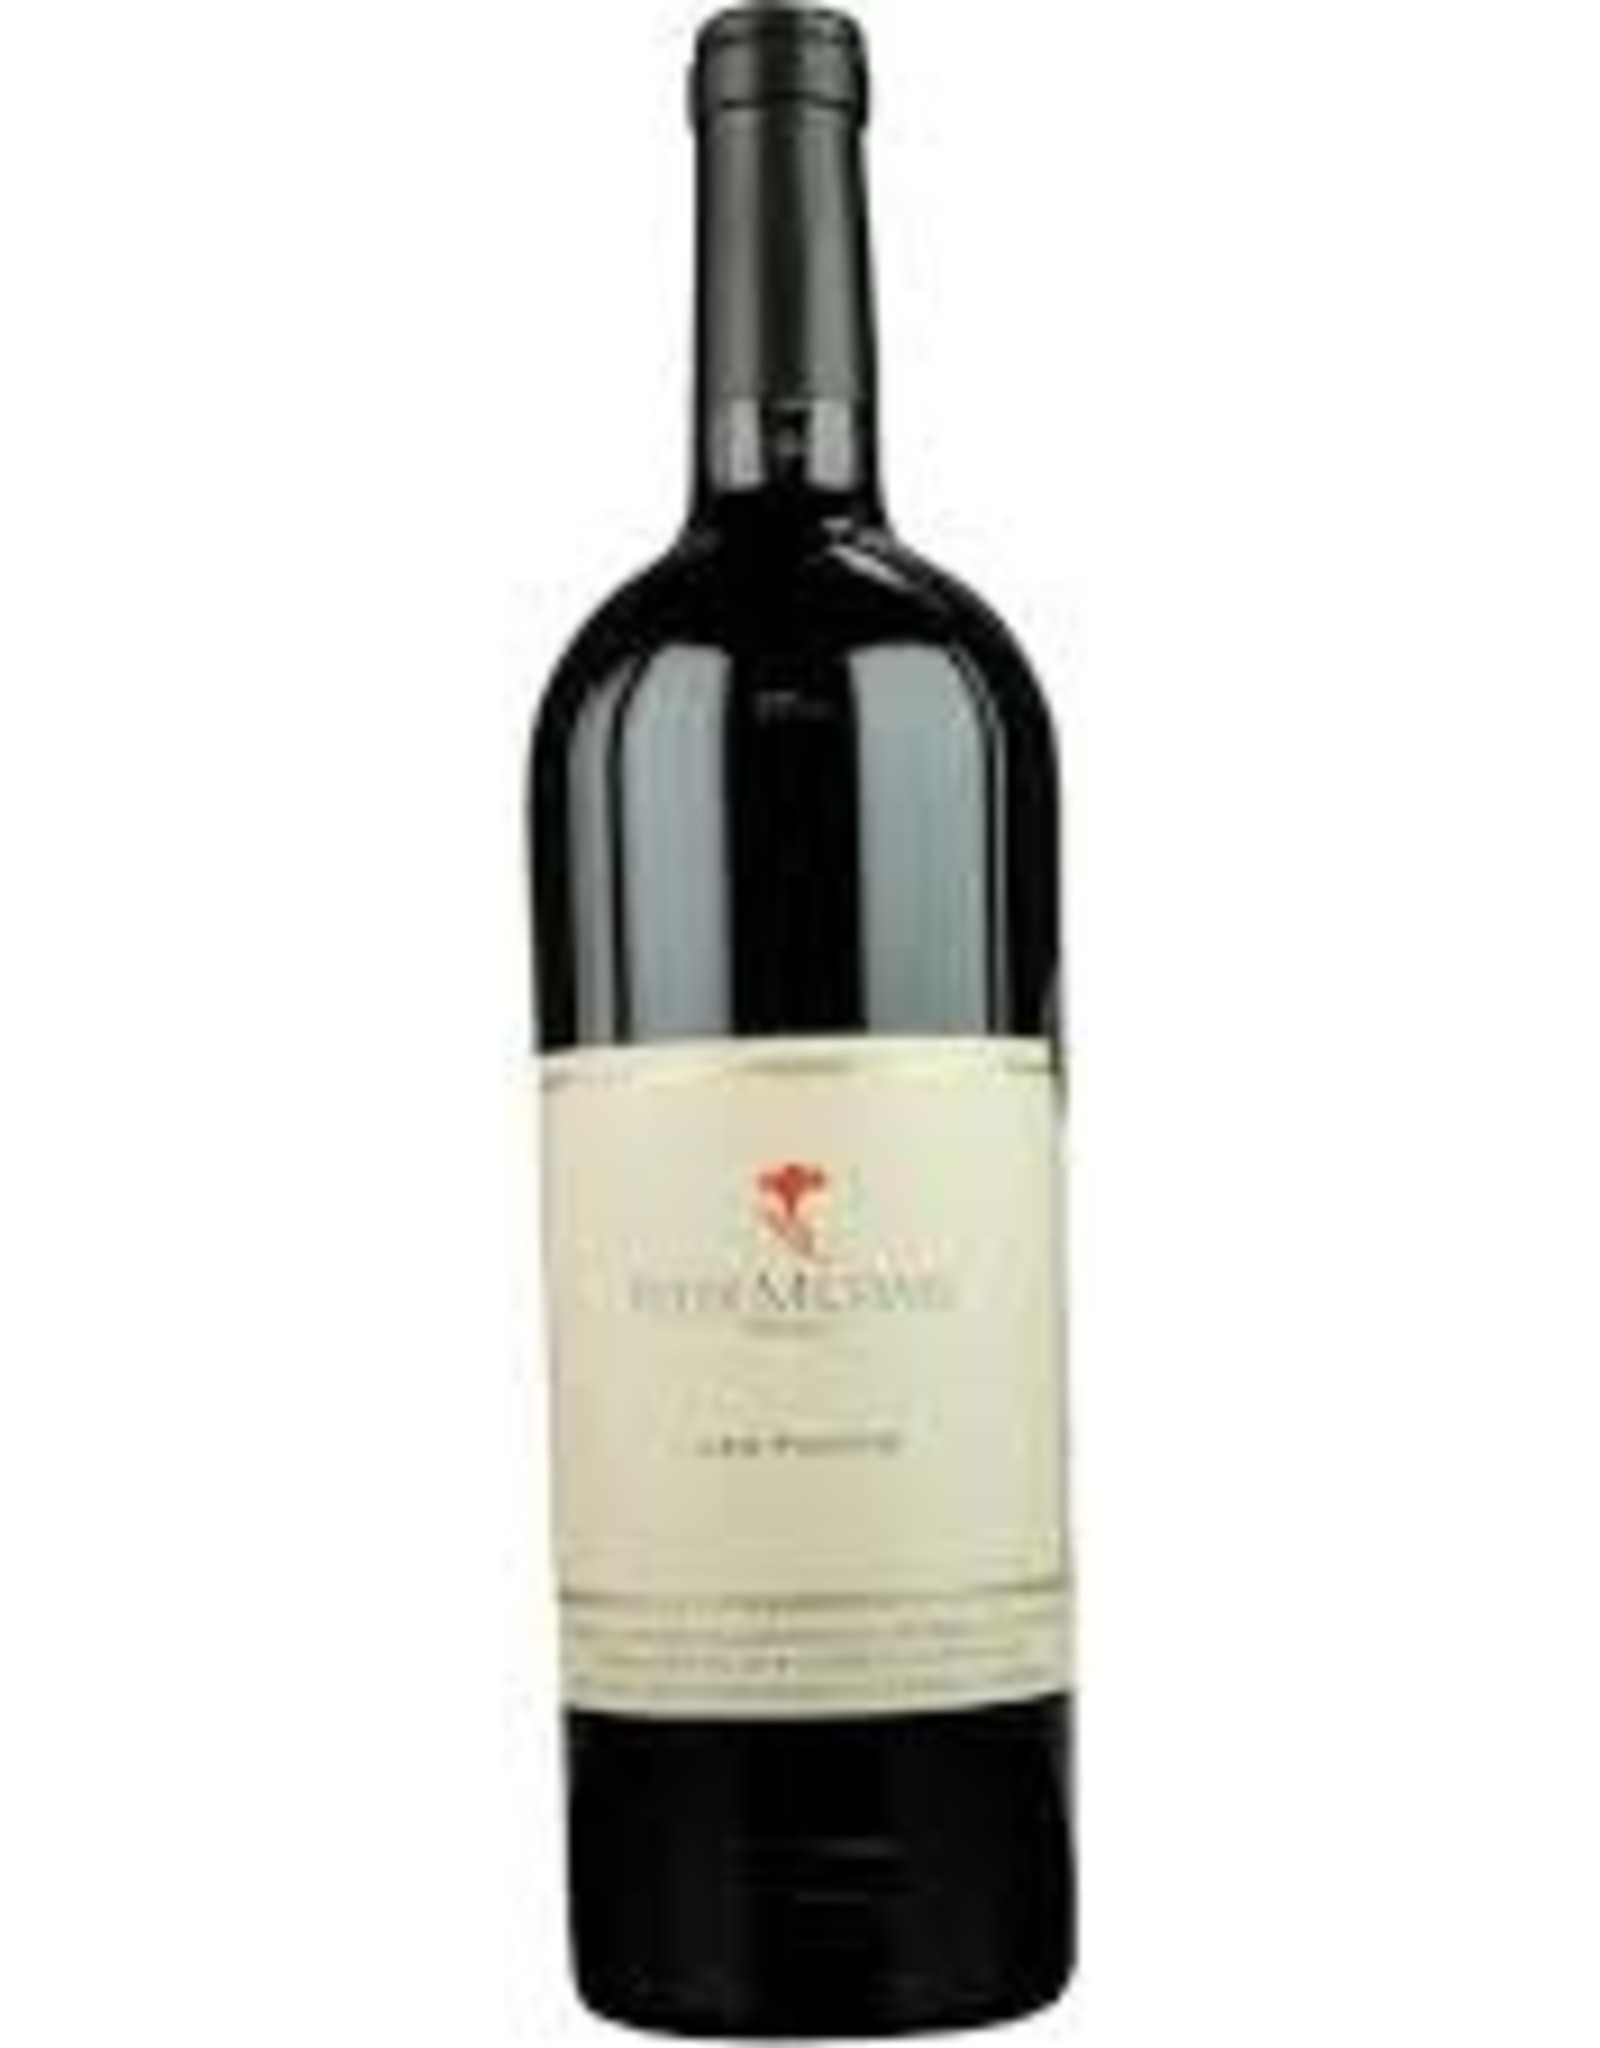 Red Blend, Knights Valley, LES PAVOTS, Peter Michael 2011